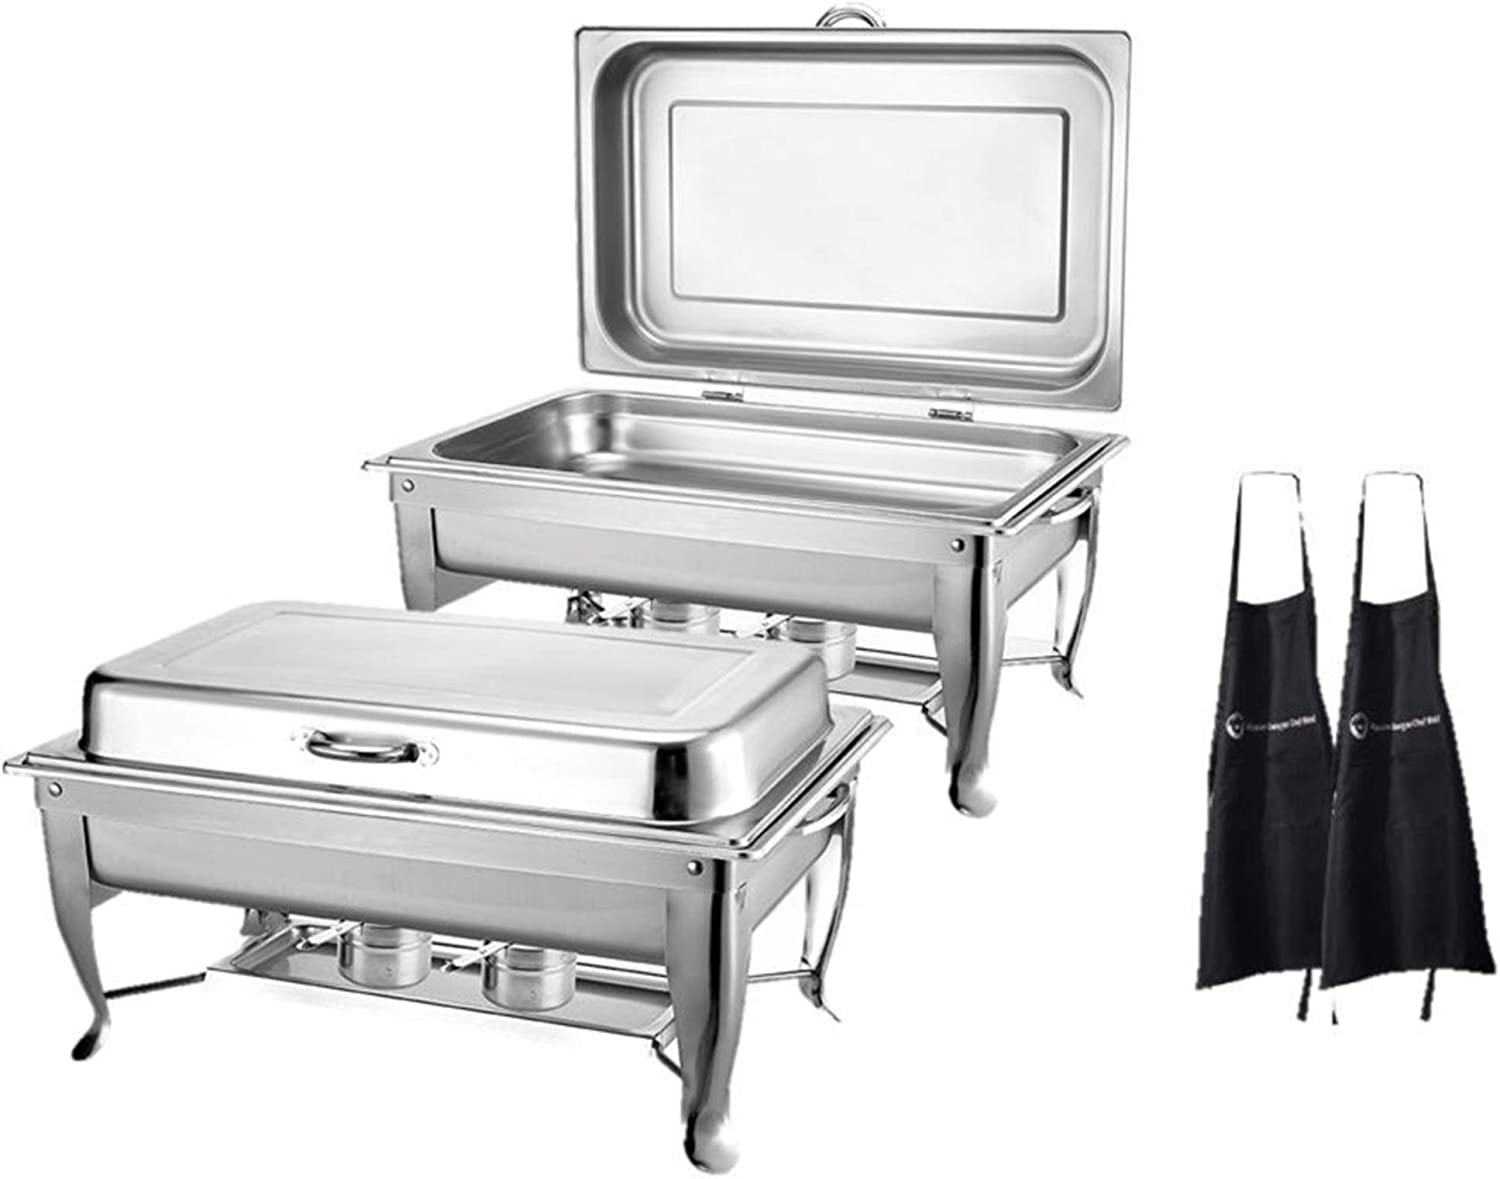 2 Pack| 8 Qt Delux Hinged Chafing Dish Foldable Frame Buffet Chafer Stainless Steel Food Warmer and 2 Aprons